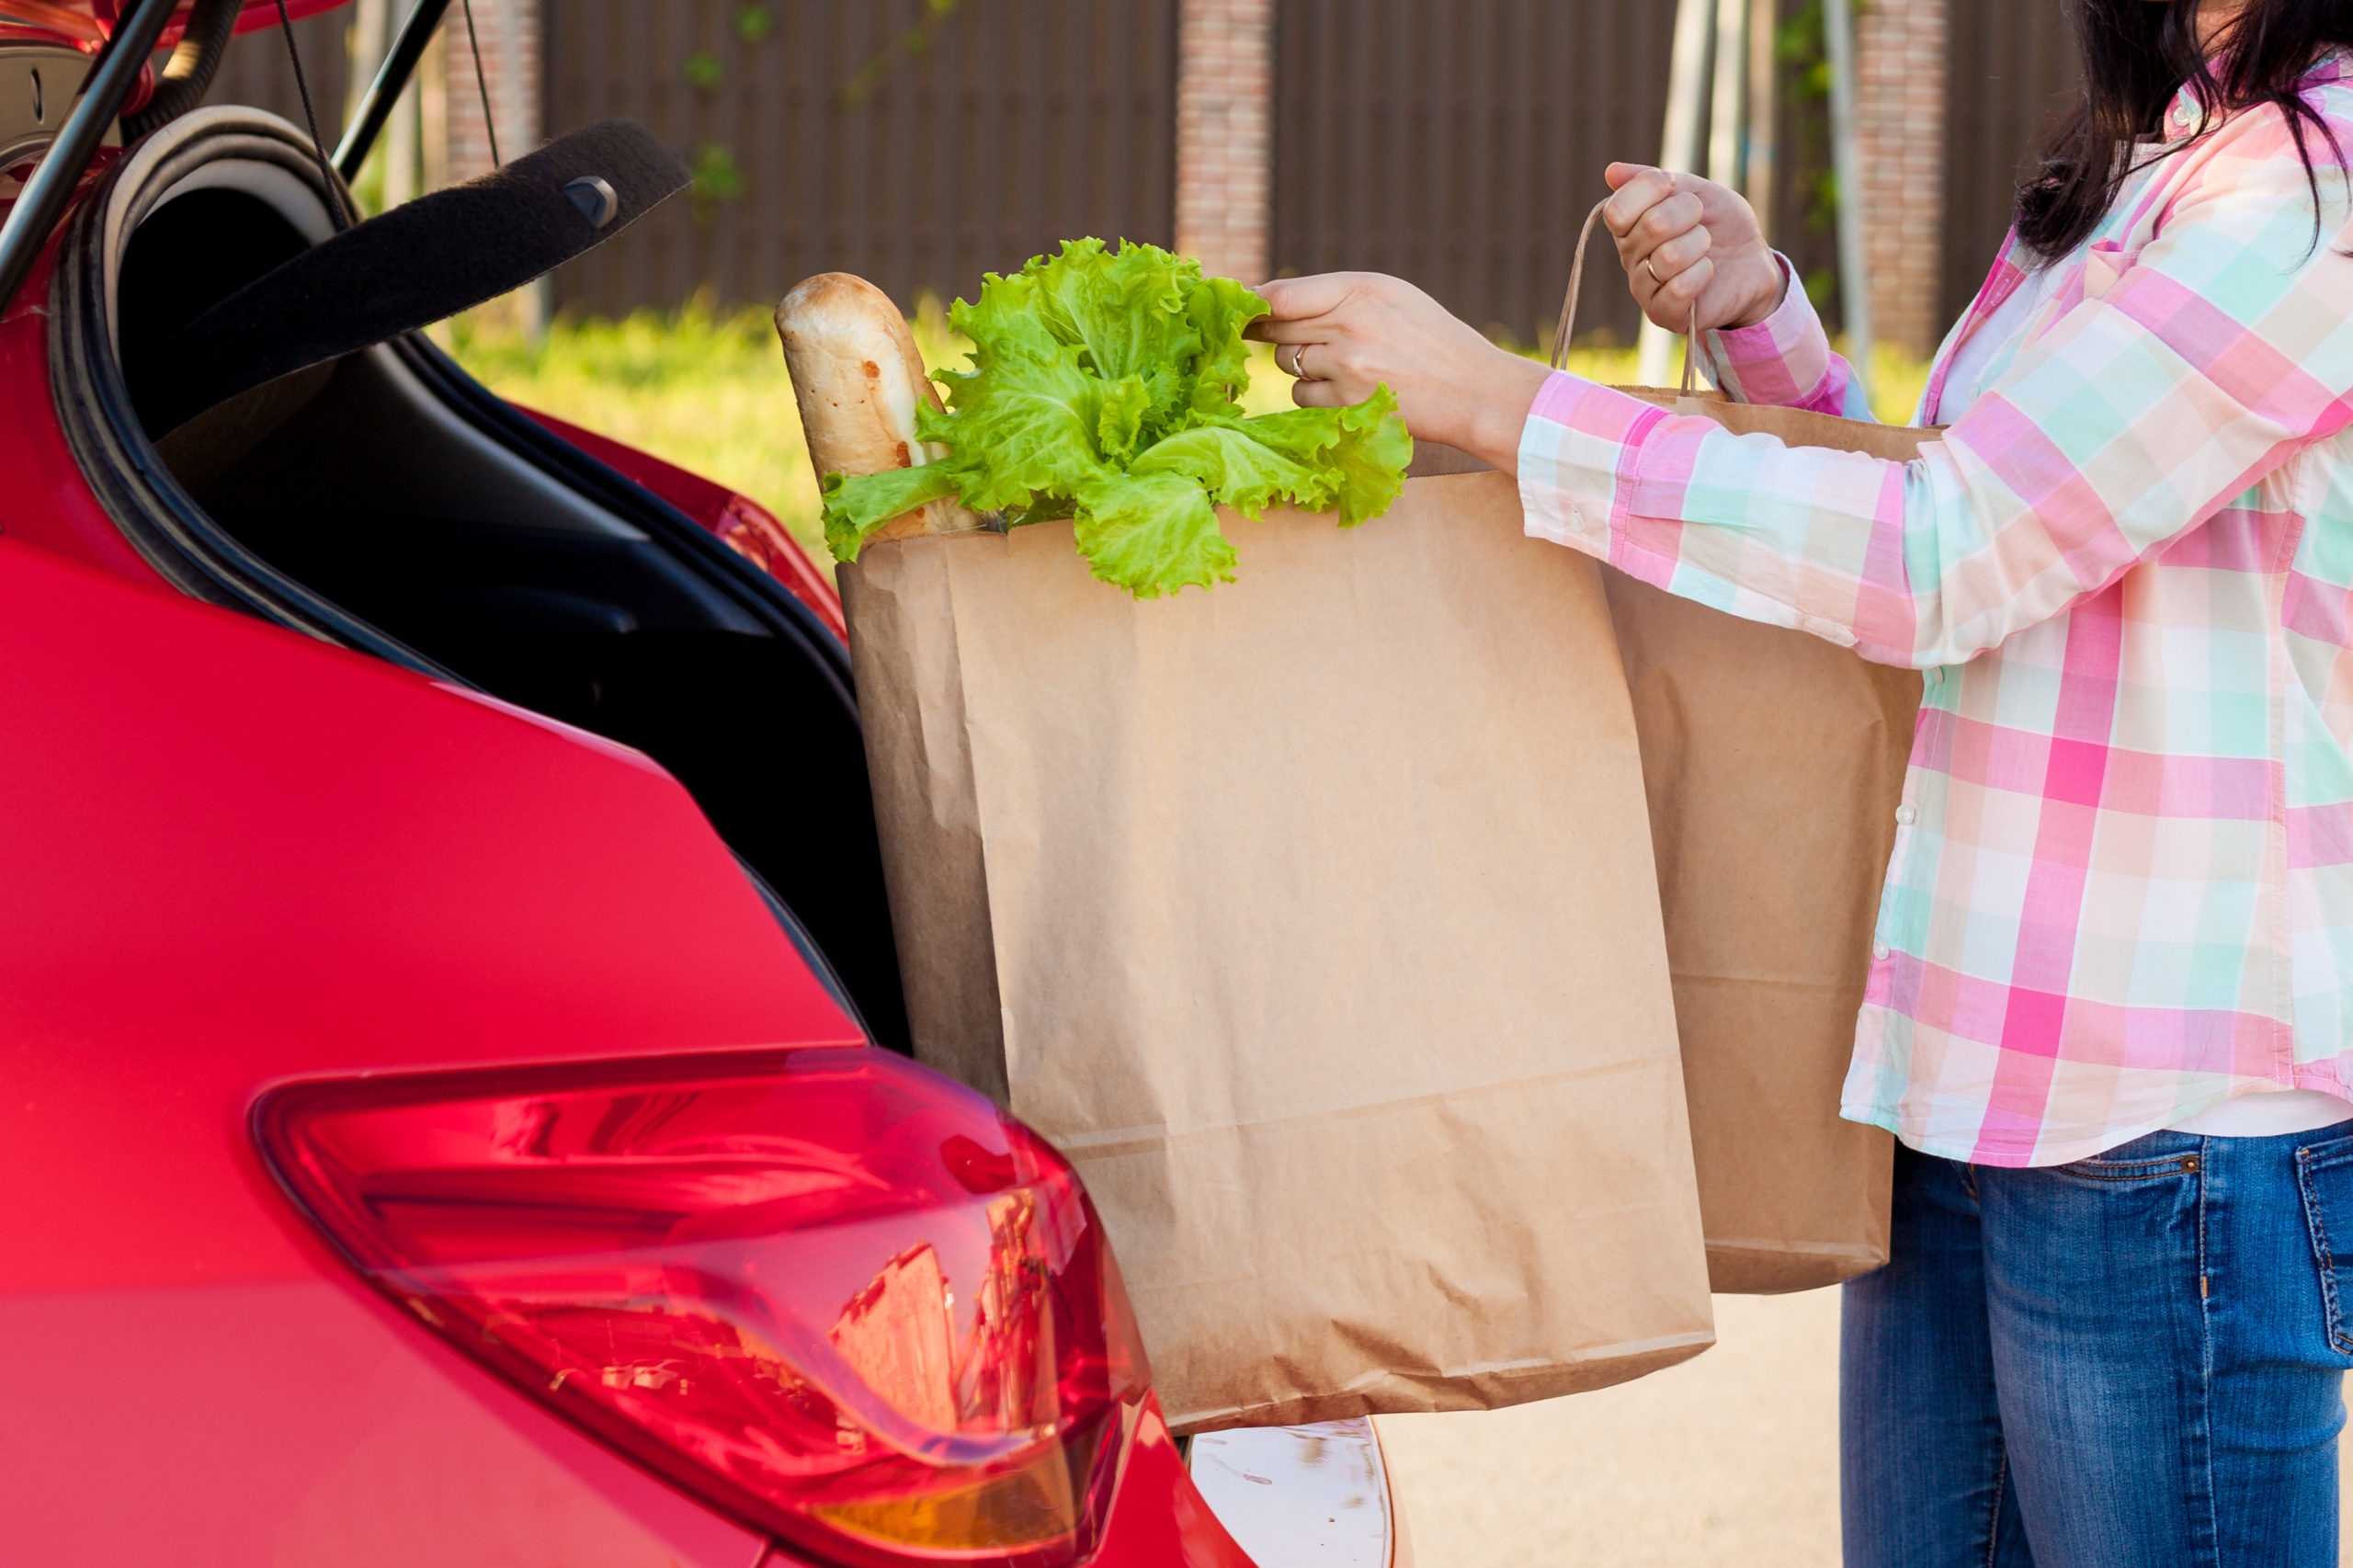 Customers placing online orders and picking up groceries is becoming more common.